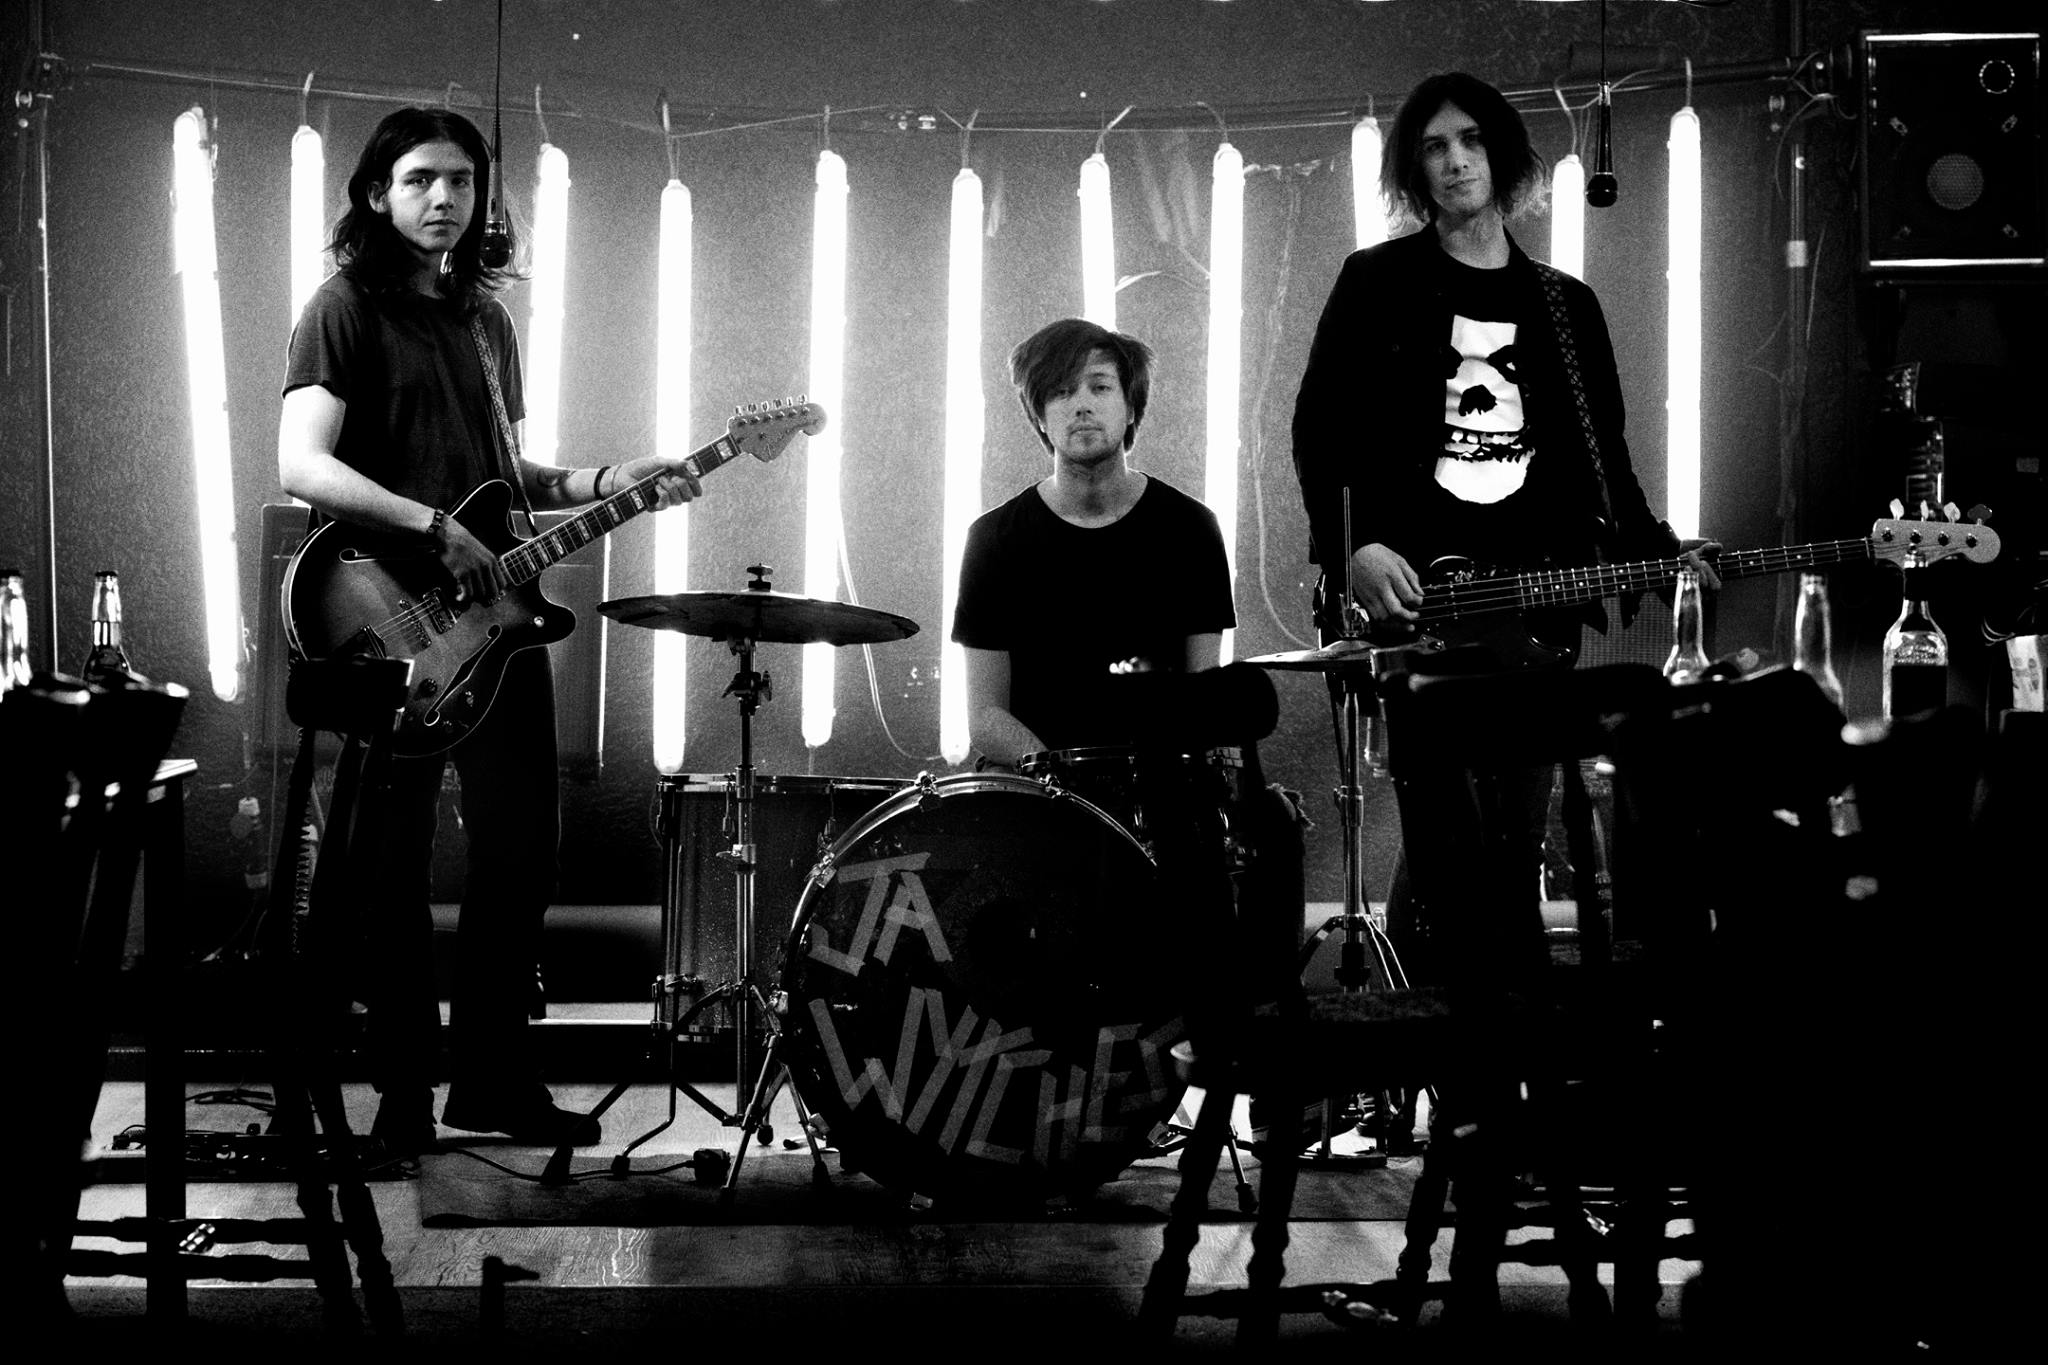 The Wytches presentan Darker, cara B de su nuevo single